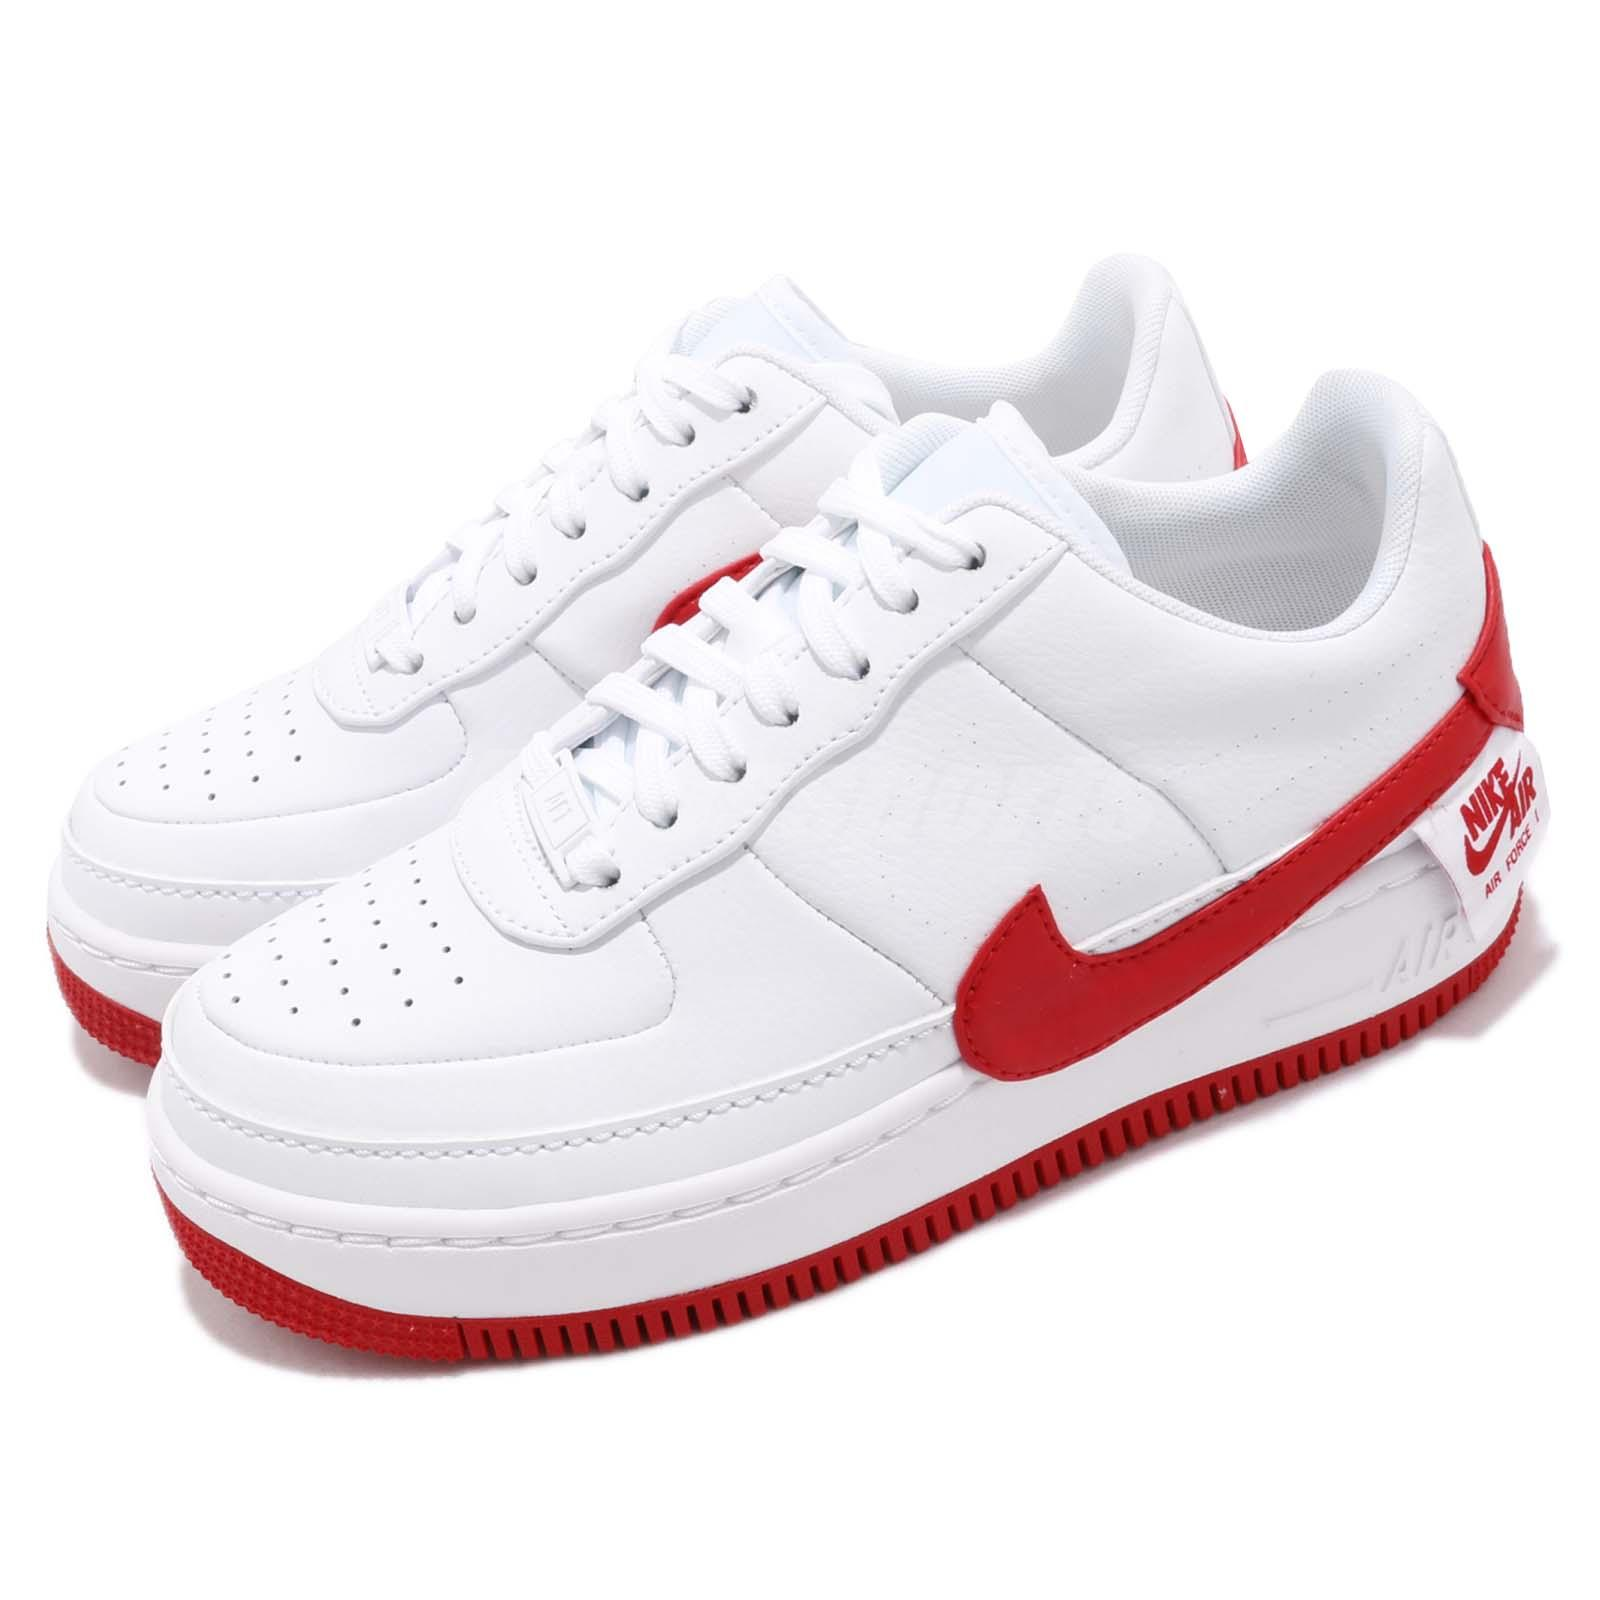 Details about Nike Wmns AF1 Jester XX Air Force 1 University Red Women  Casual Shoes AO1220-106 c7f46d0d0